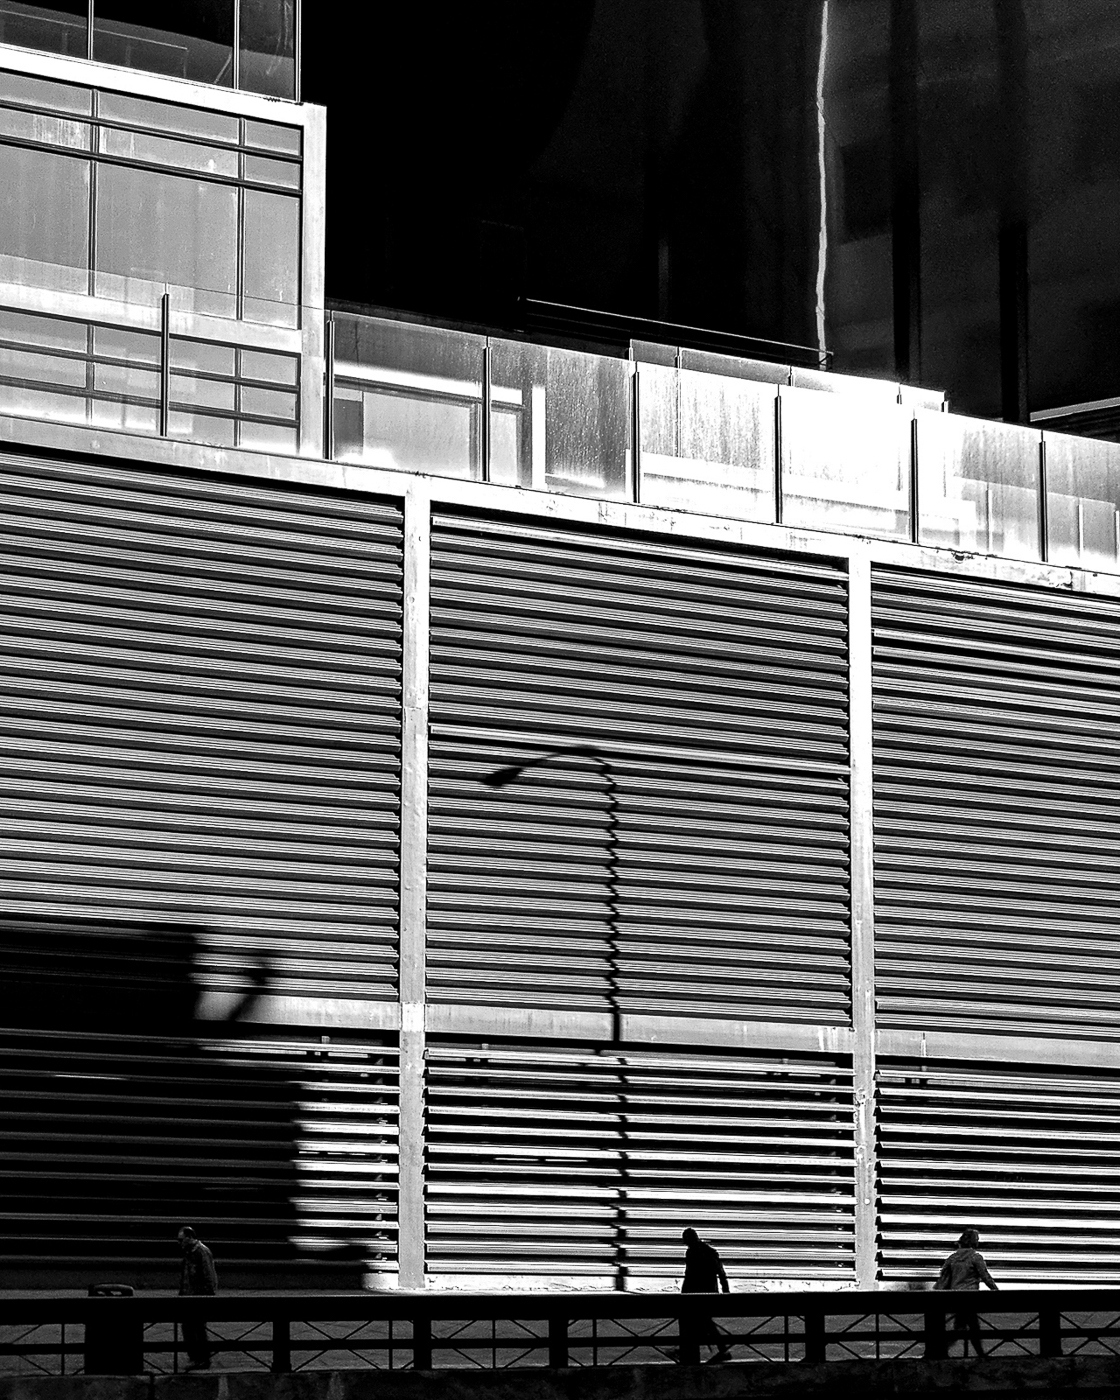 Alexandria_Donovan_Madrid Shadows.jpg